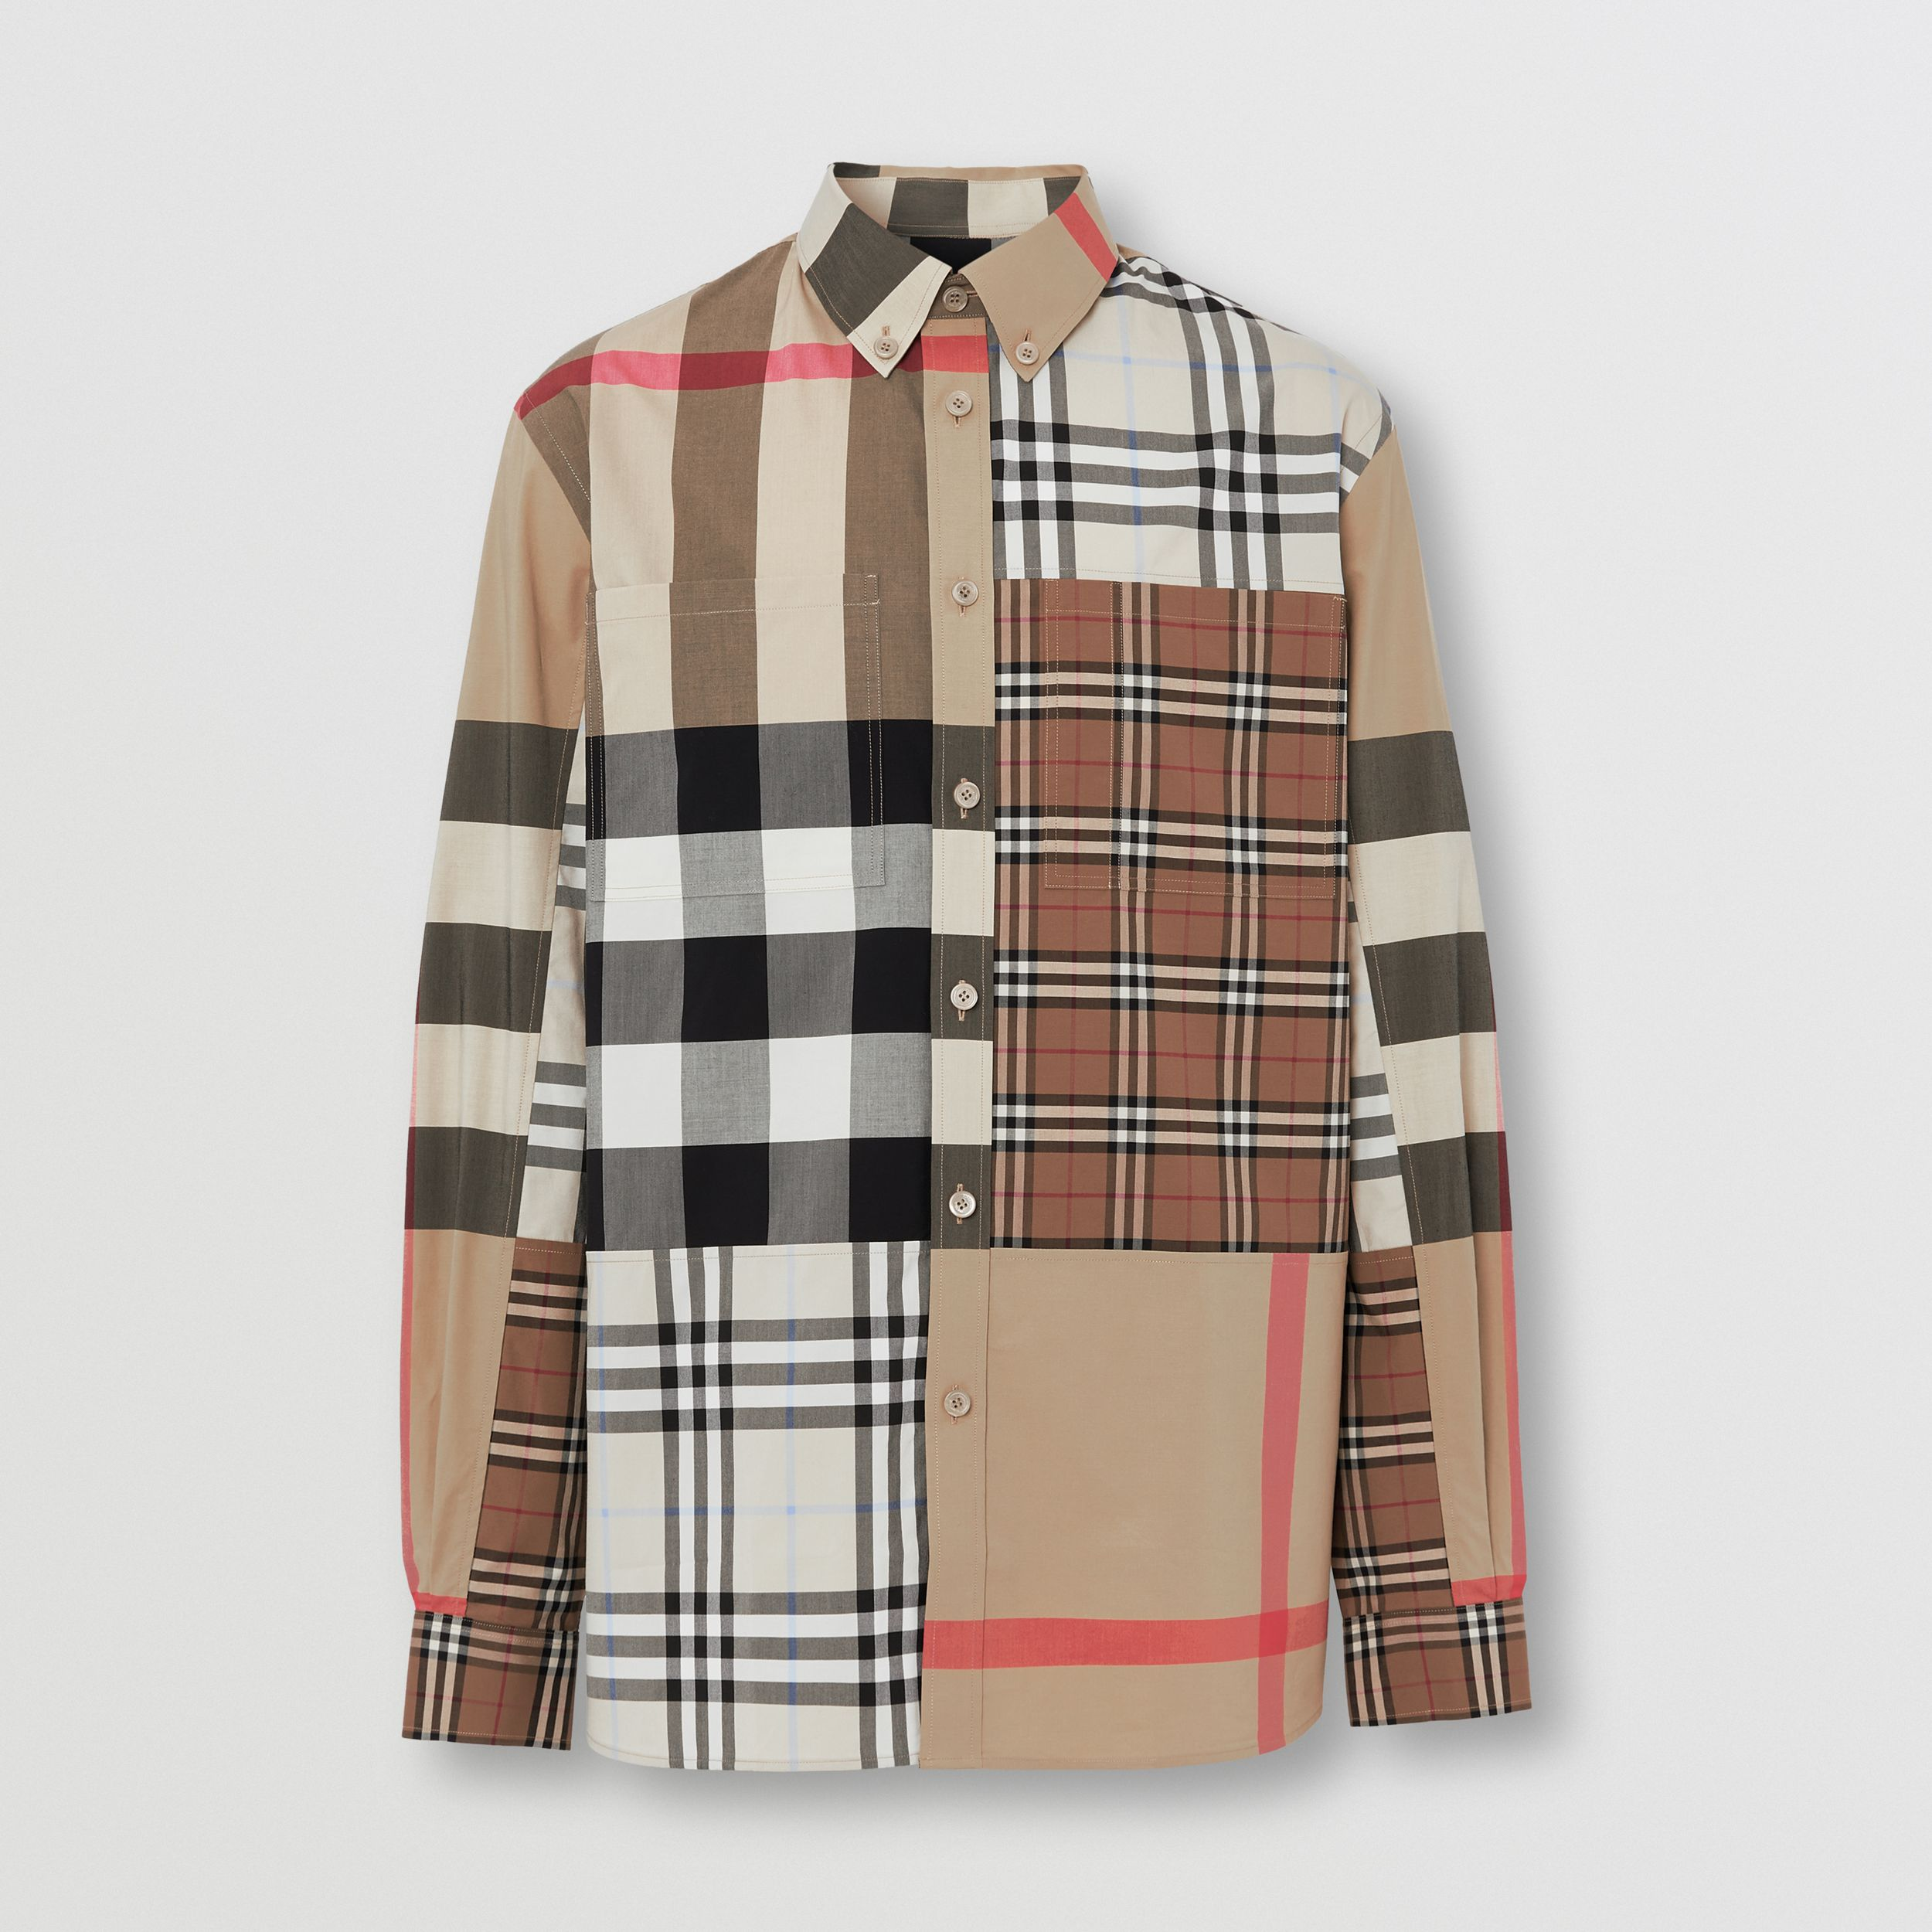 Contrast Check Stretch Cotton Poplin Shirt in Light Almond - Men | Burberry - 4